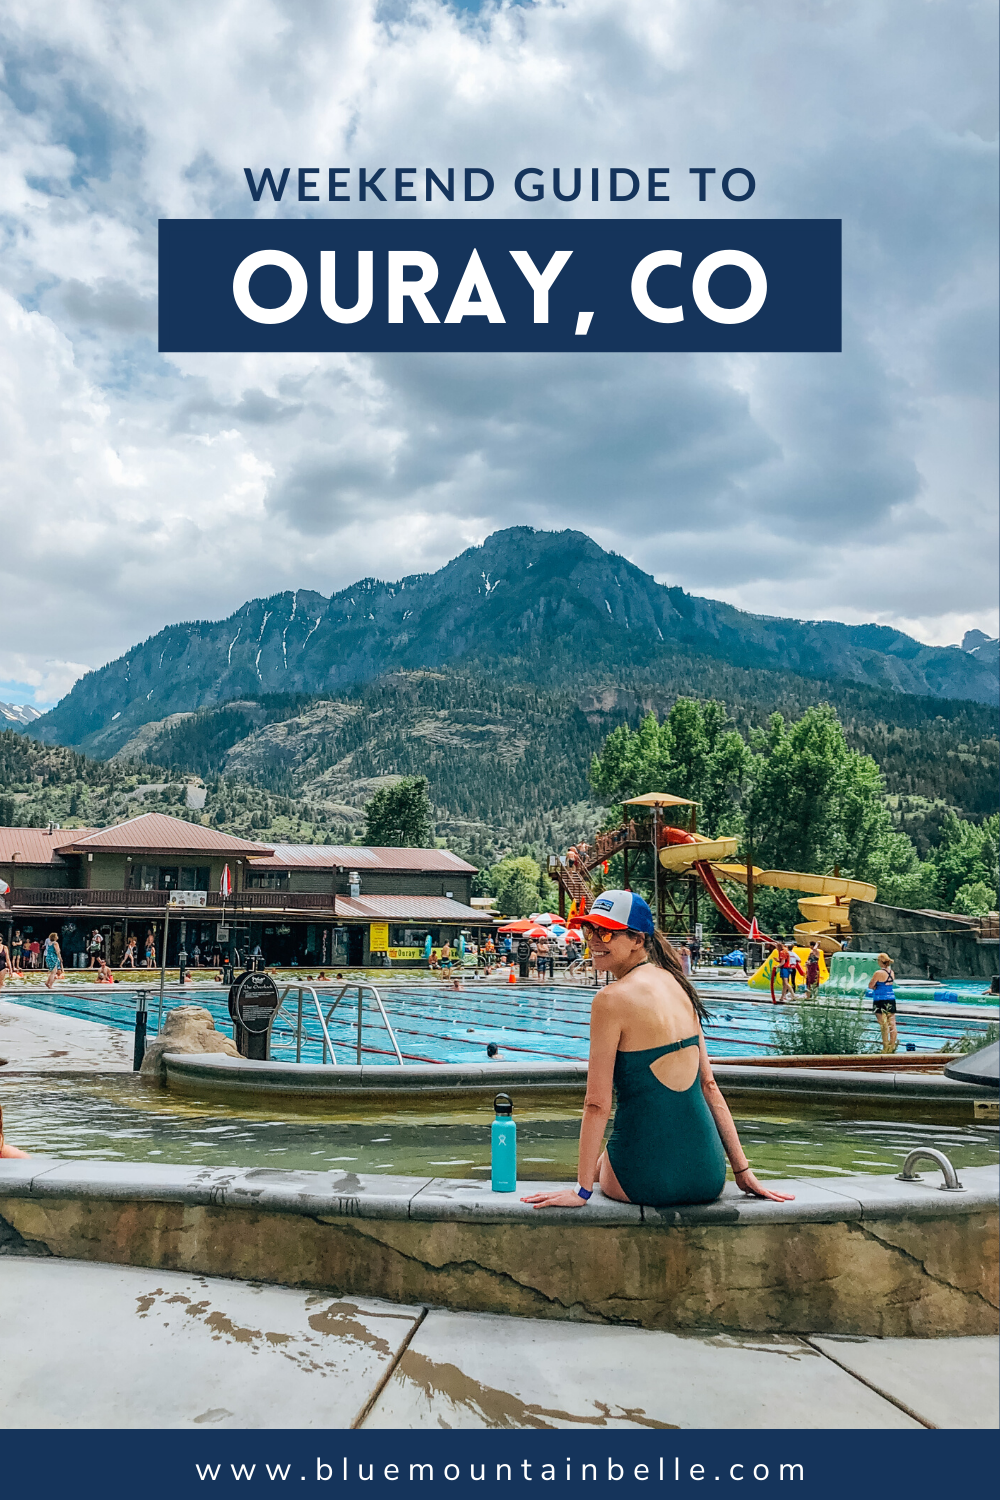 ouray little switzerland of america guide blue mountain belle in 2020 road trip to colorado colorado travel colorado family vacation pinterest